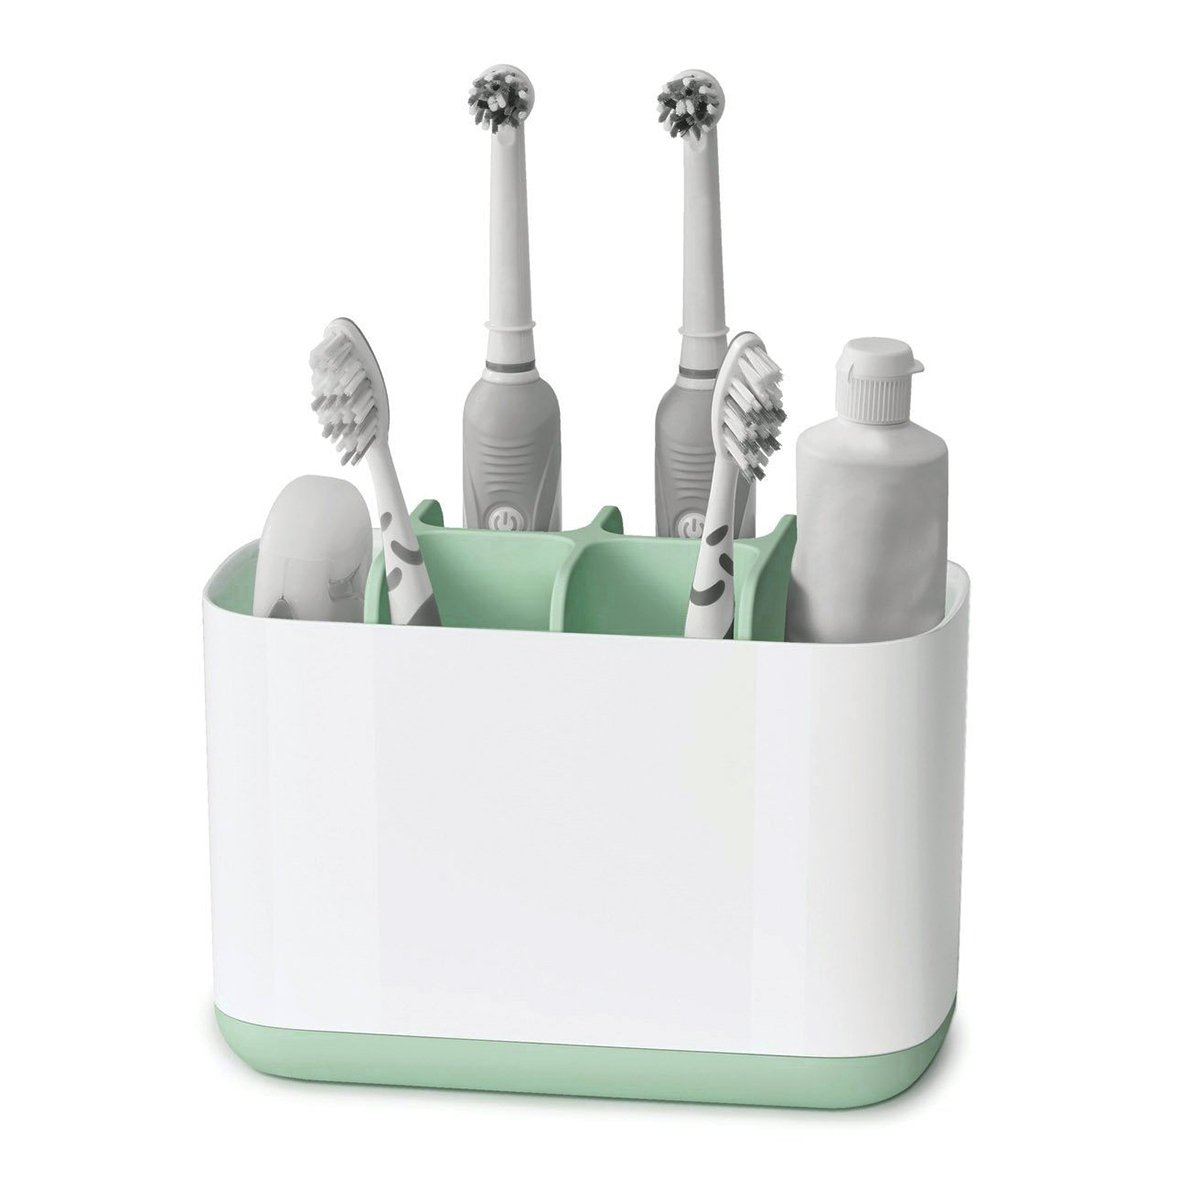 Kunbao Toothbrush Holder Cup Bathroom Toothpaste Stand,ABS+PP+TPR Storage Rack Set (large)